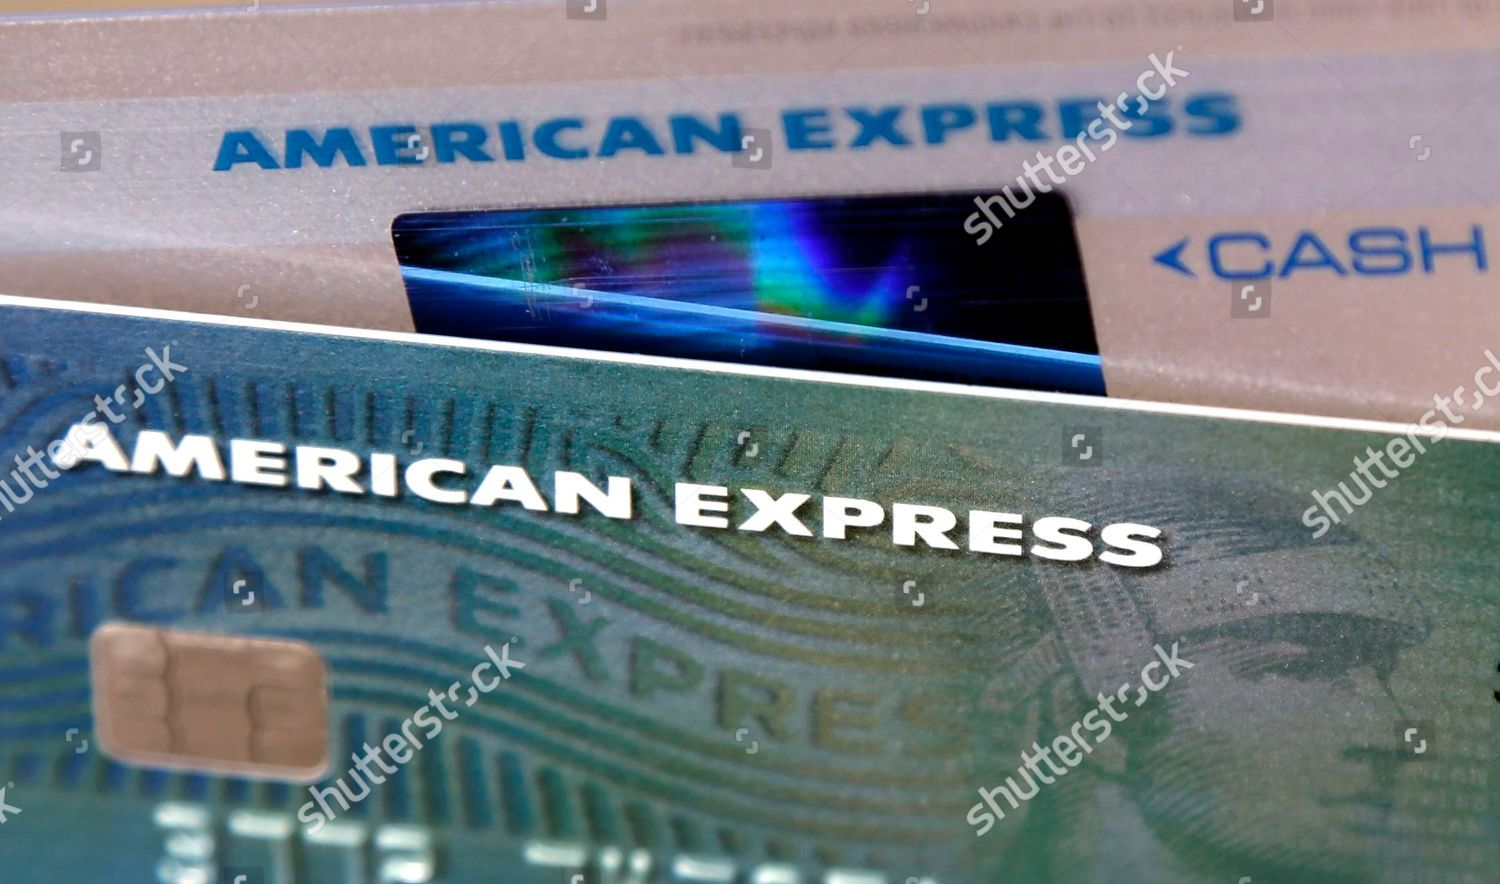 American Express Usa >> This Photo Shows American Express Credit Cards Editorial